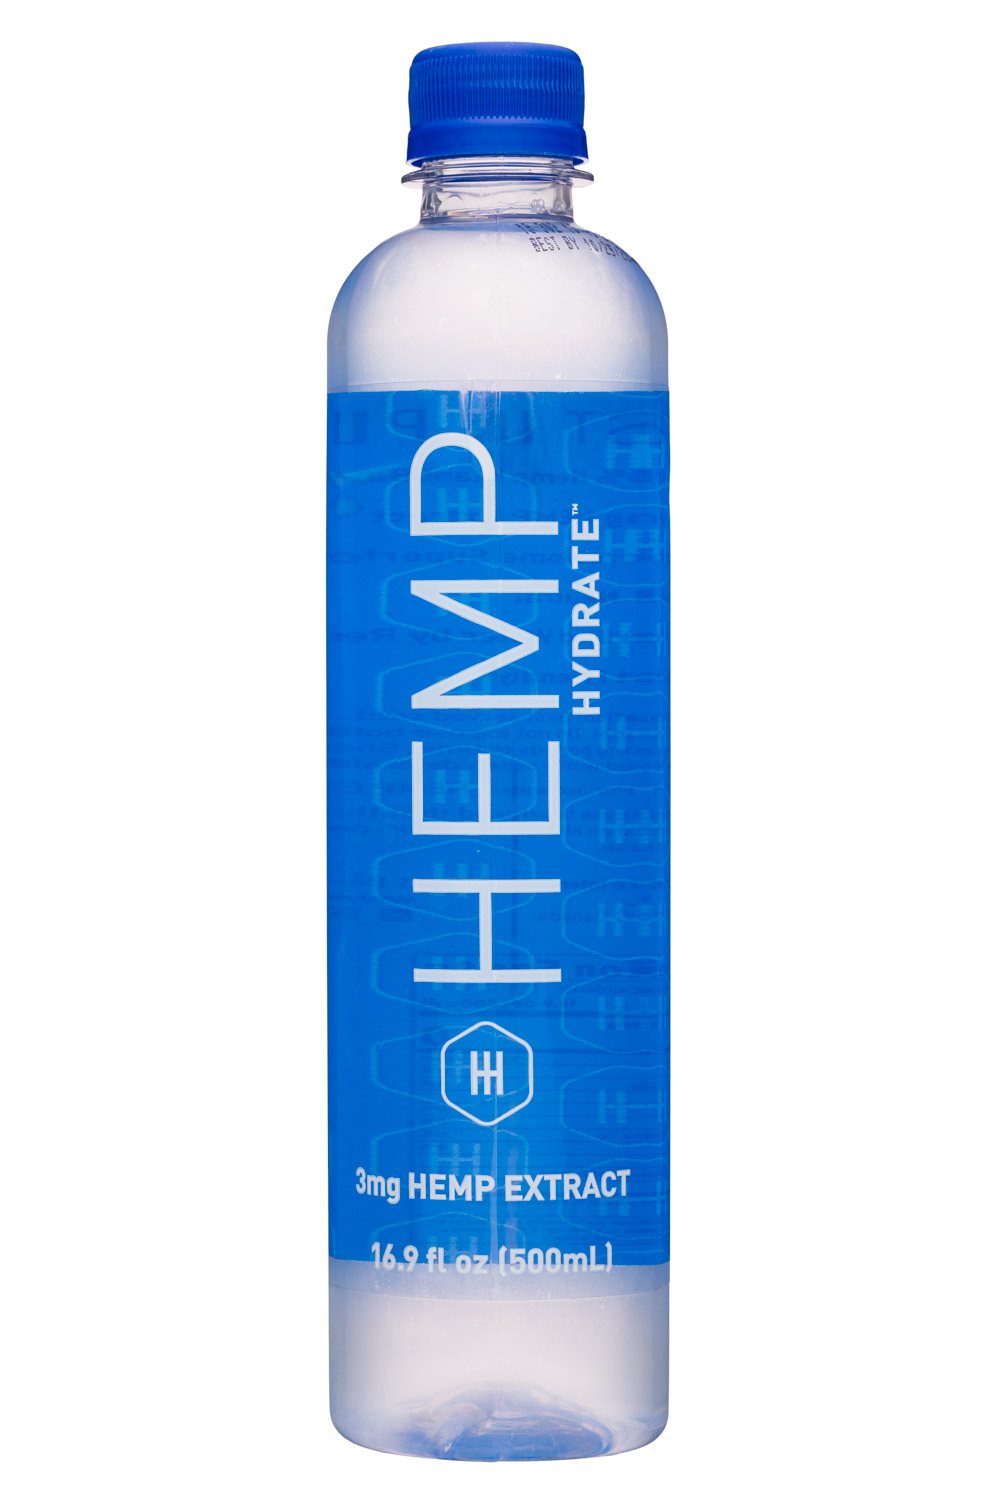 Hemp Hydrate - 3mg Hemp Extract